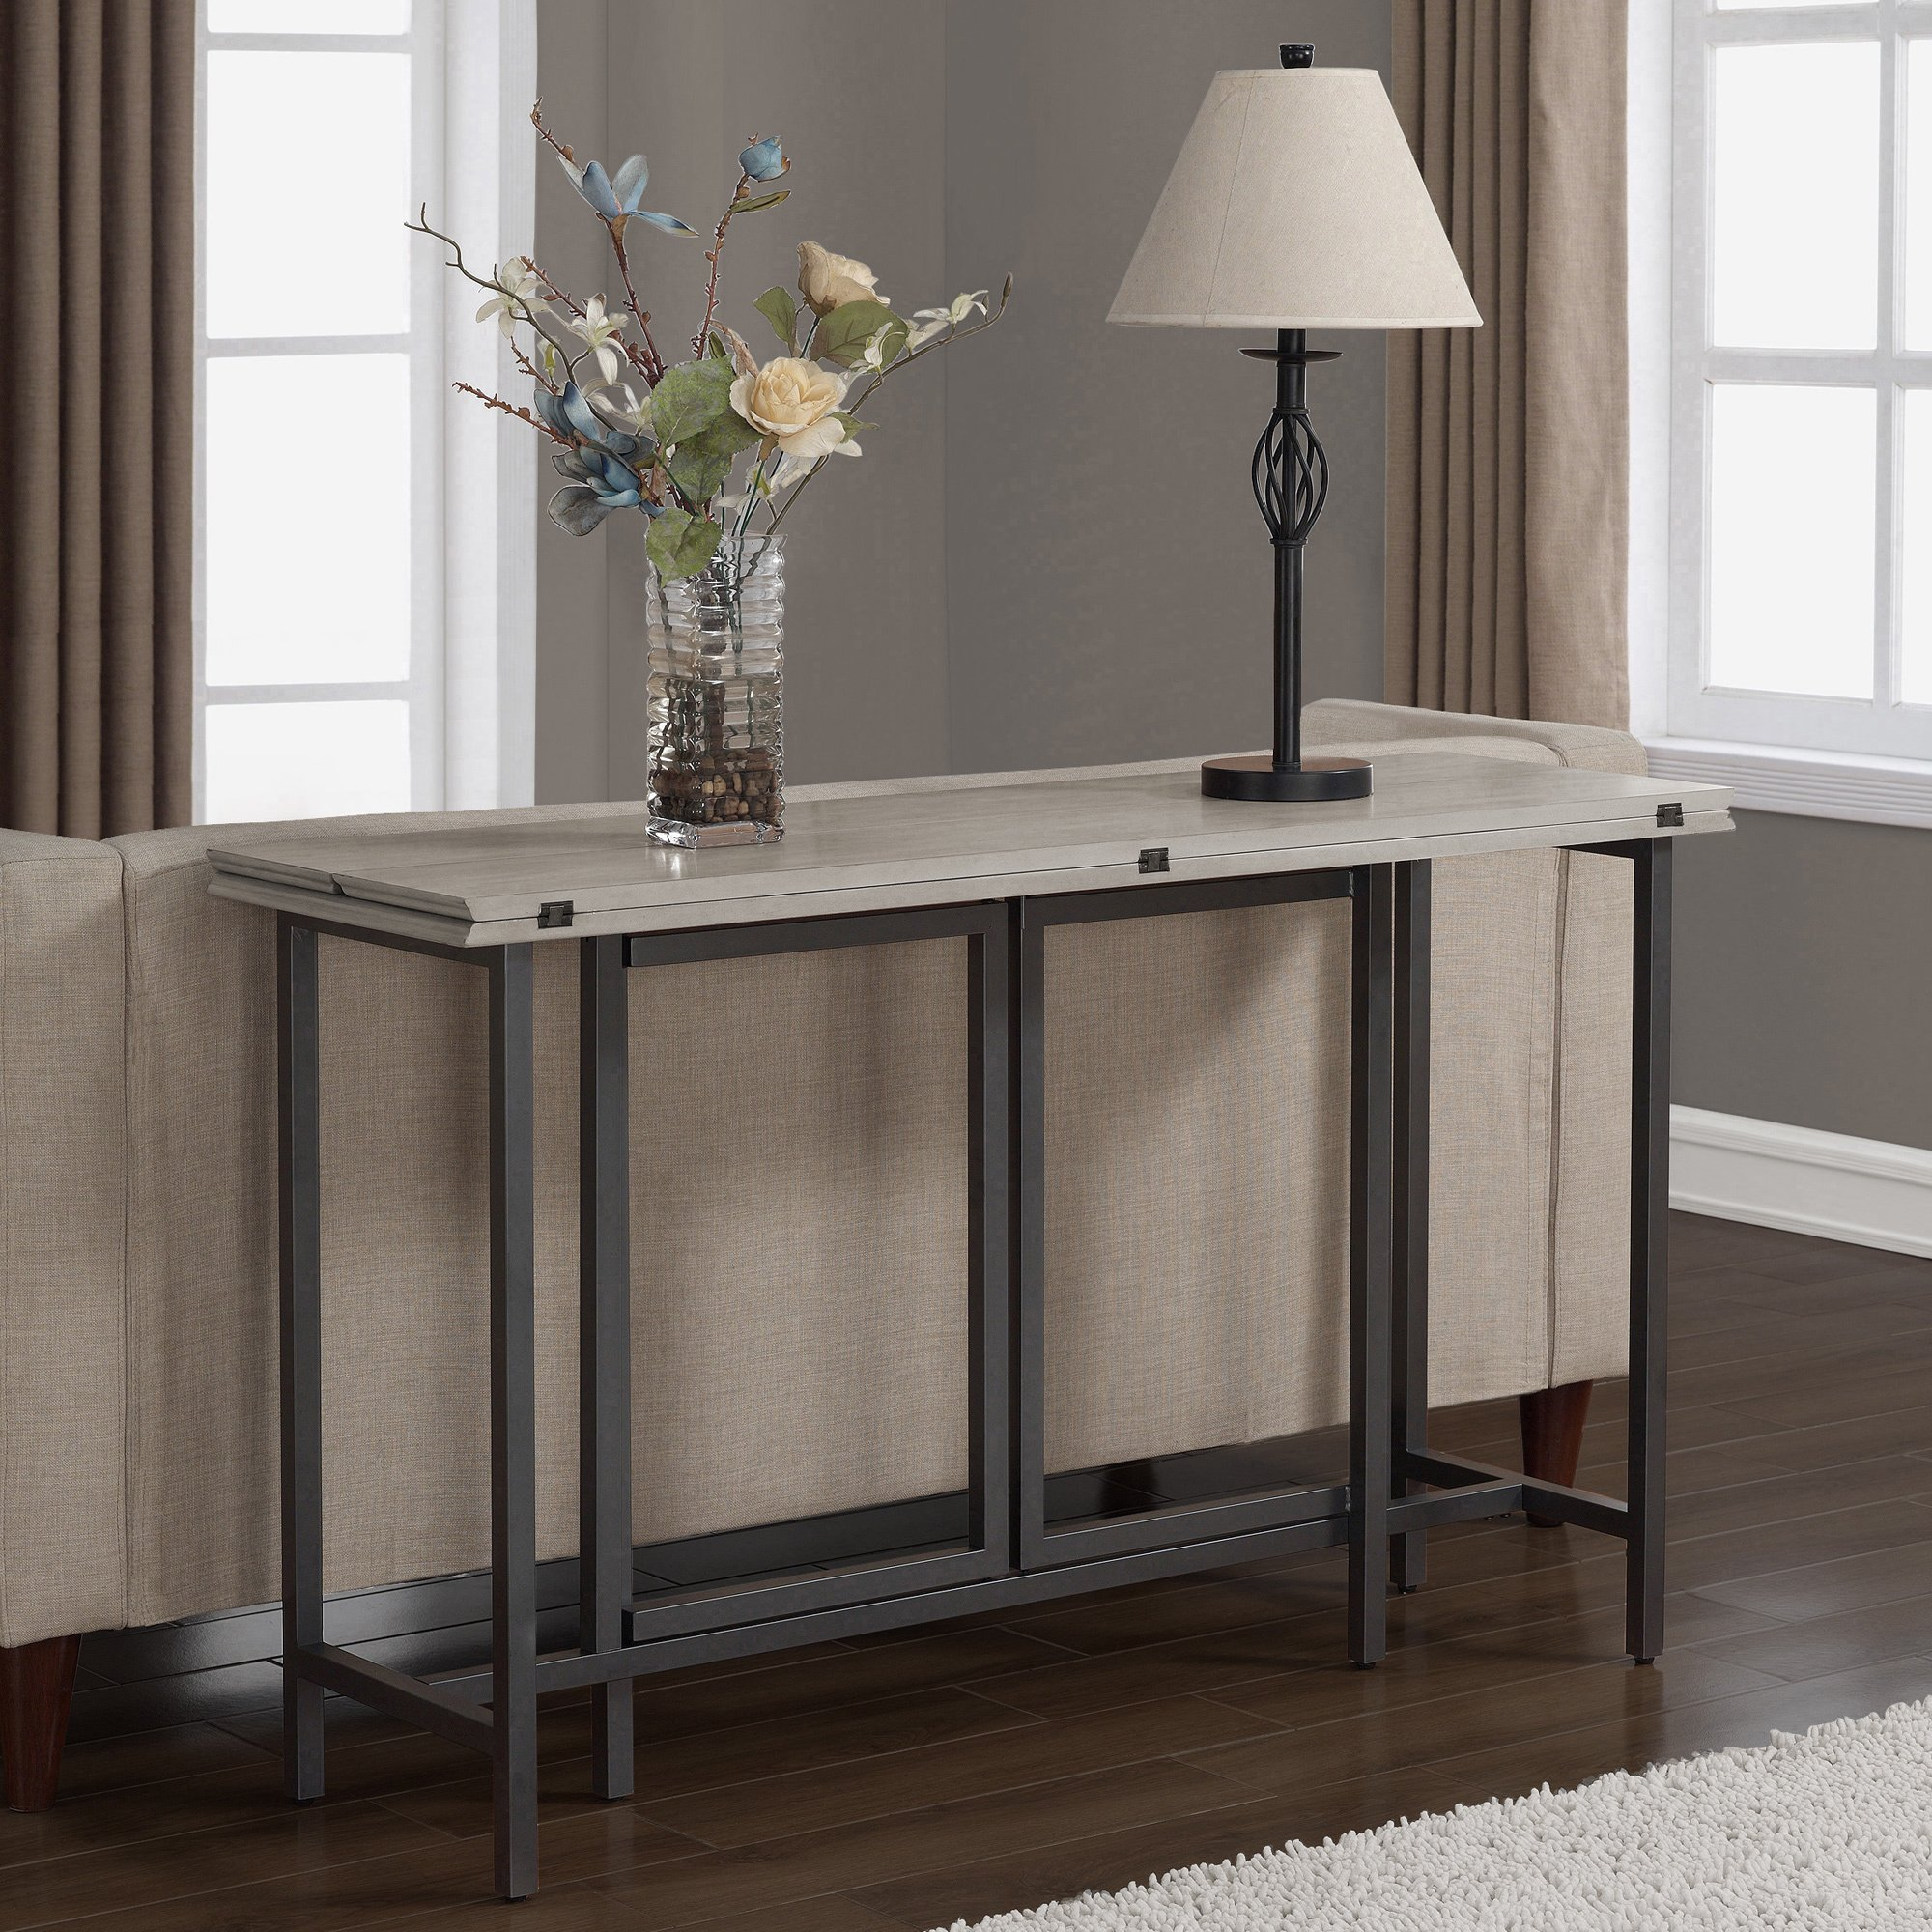 Convertible Dining Table Wood Contemporary Expandable Home Console Kitchen Table by I Love Living (Image #6)